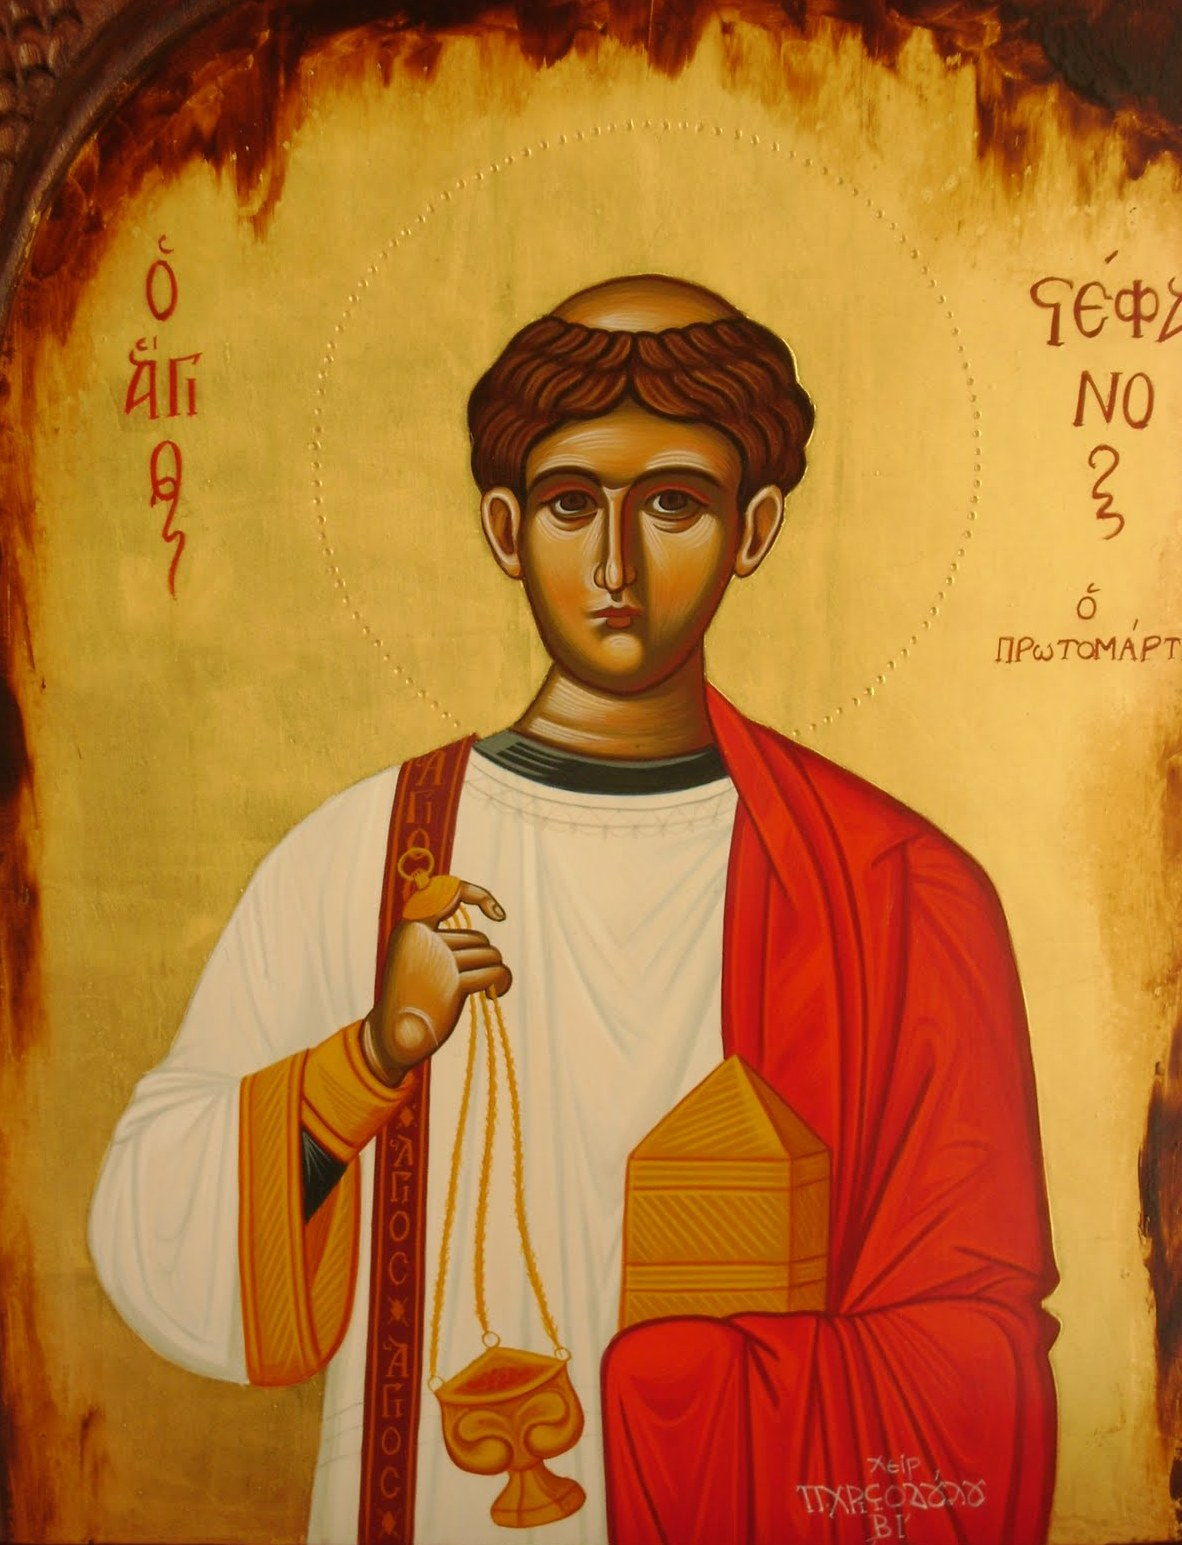 St. Stephen the Protomartyr - the Transfer of His Holy Relics is Celebrated on August 2.